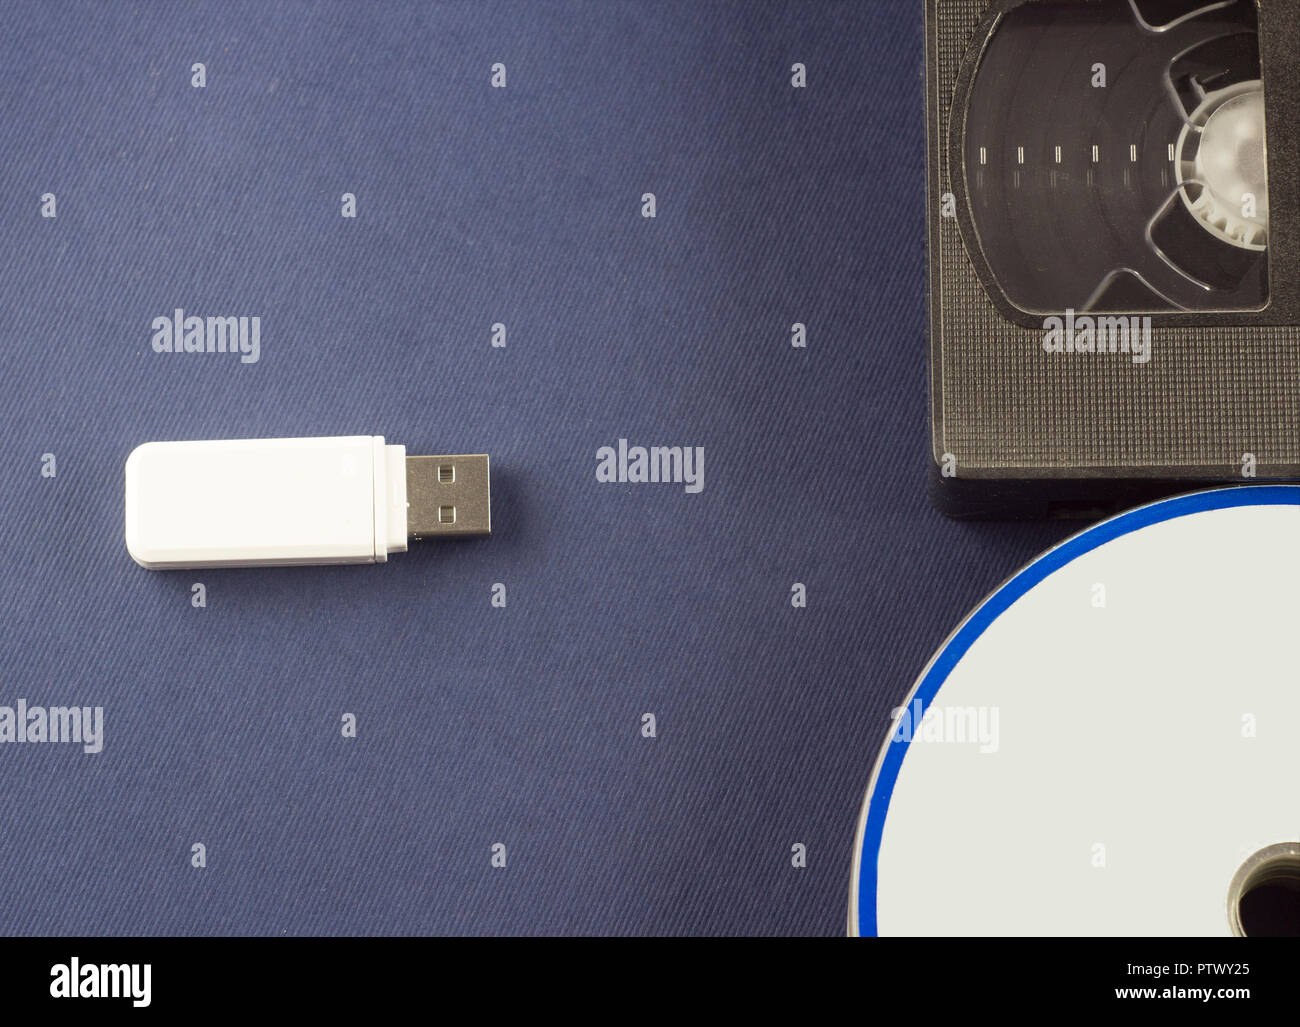 Flash drive on a blue background discs and video cassette - Stock Image